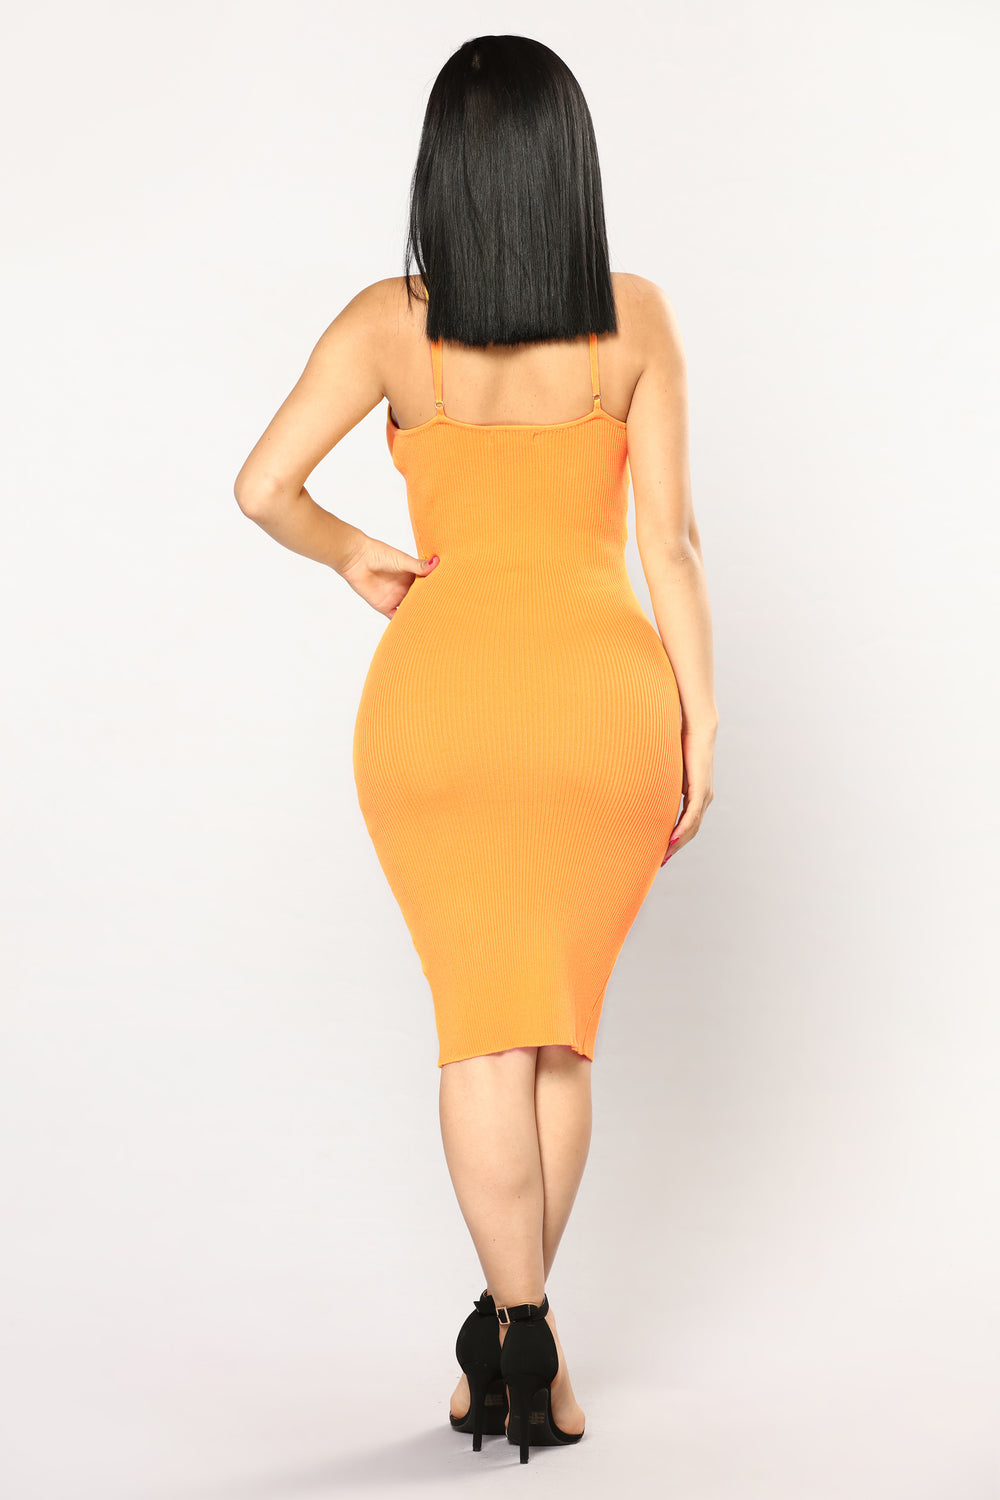 You're It Dress - Orange